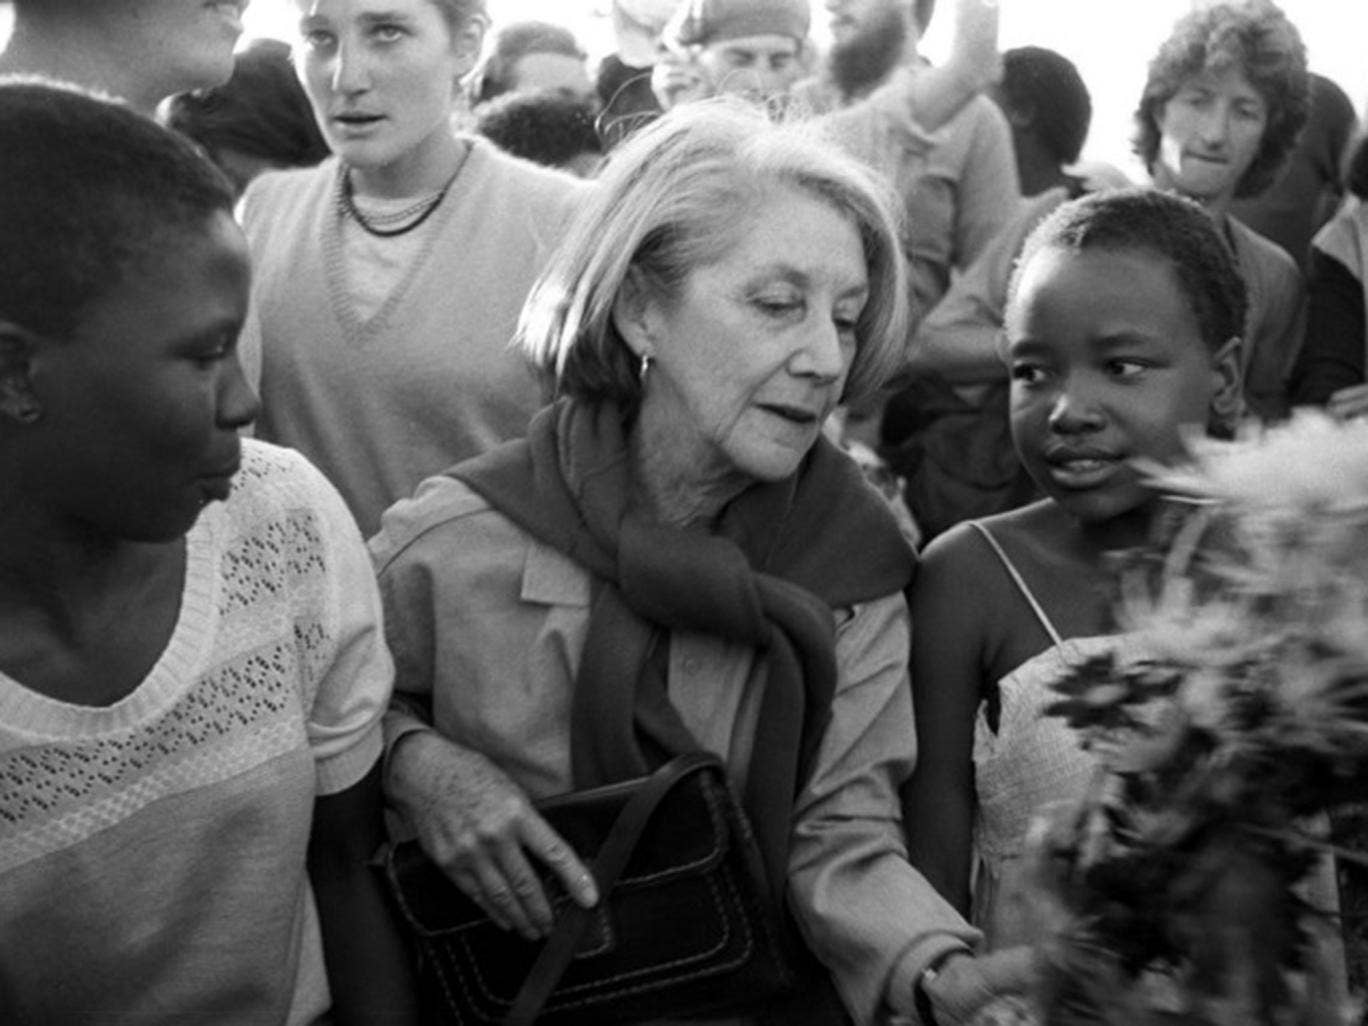 Nadine Gordimer visiting the Alexandra township in 1986 to lay wreaths at the graves of victims of political unrest